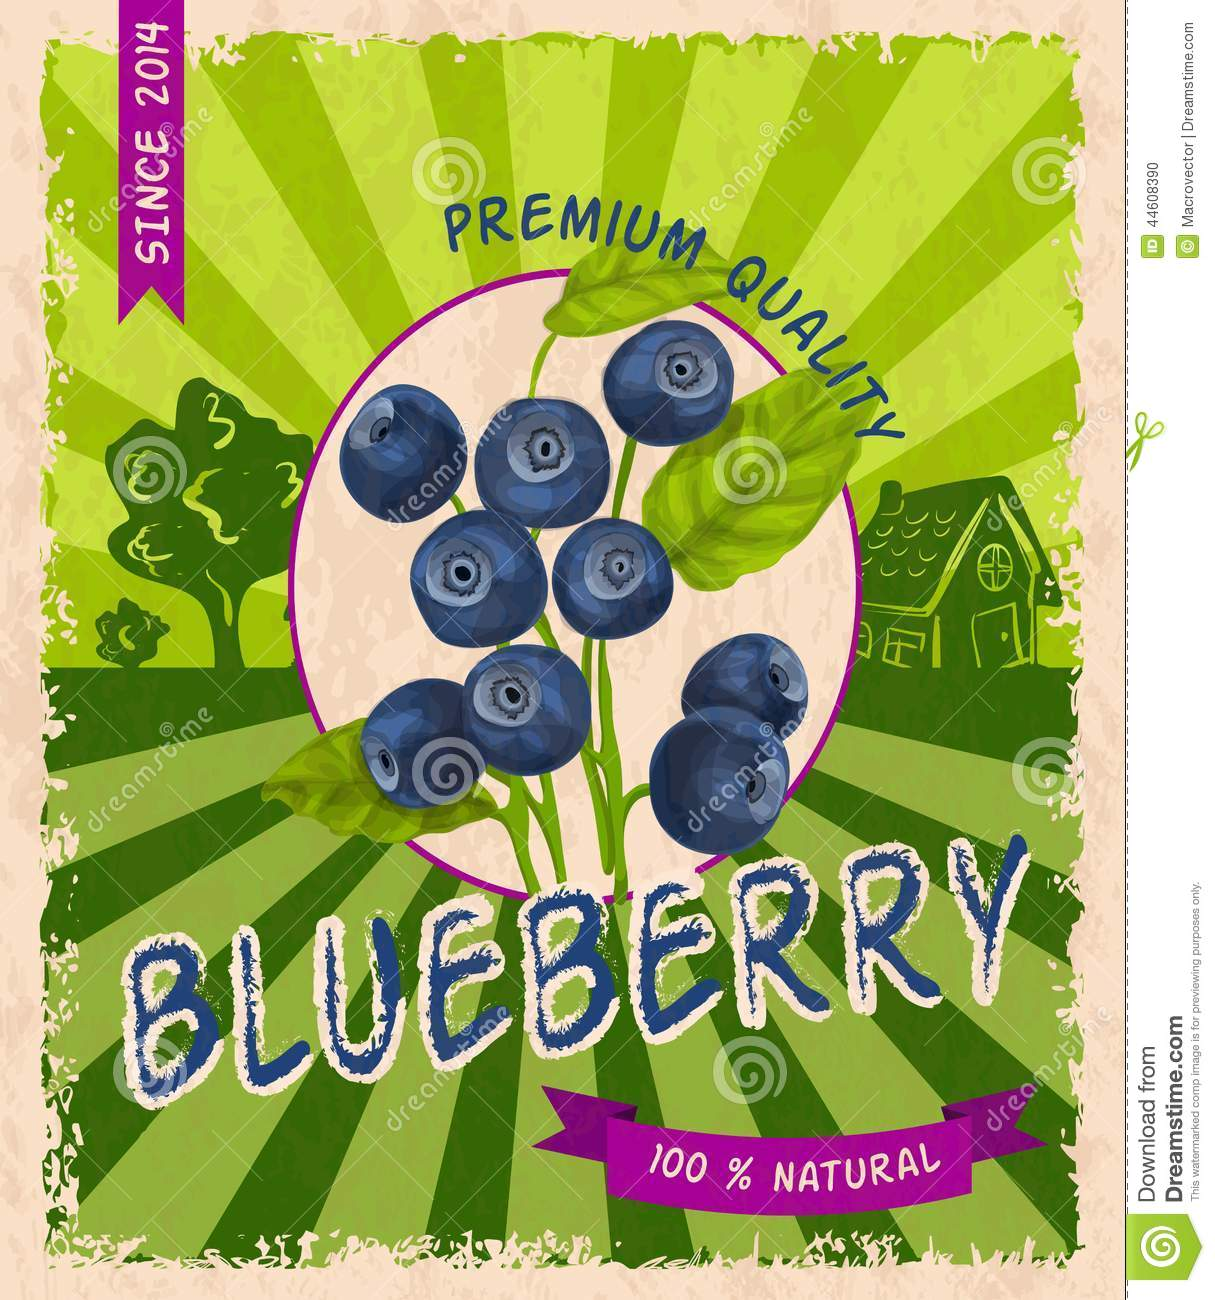 Blueberry Retro Poster Stock Vector - Image: 44608390